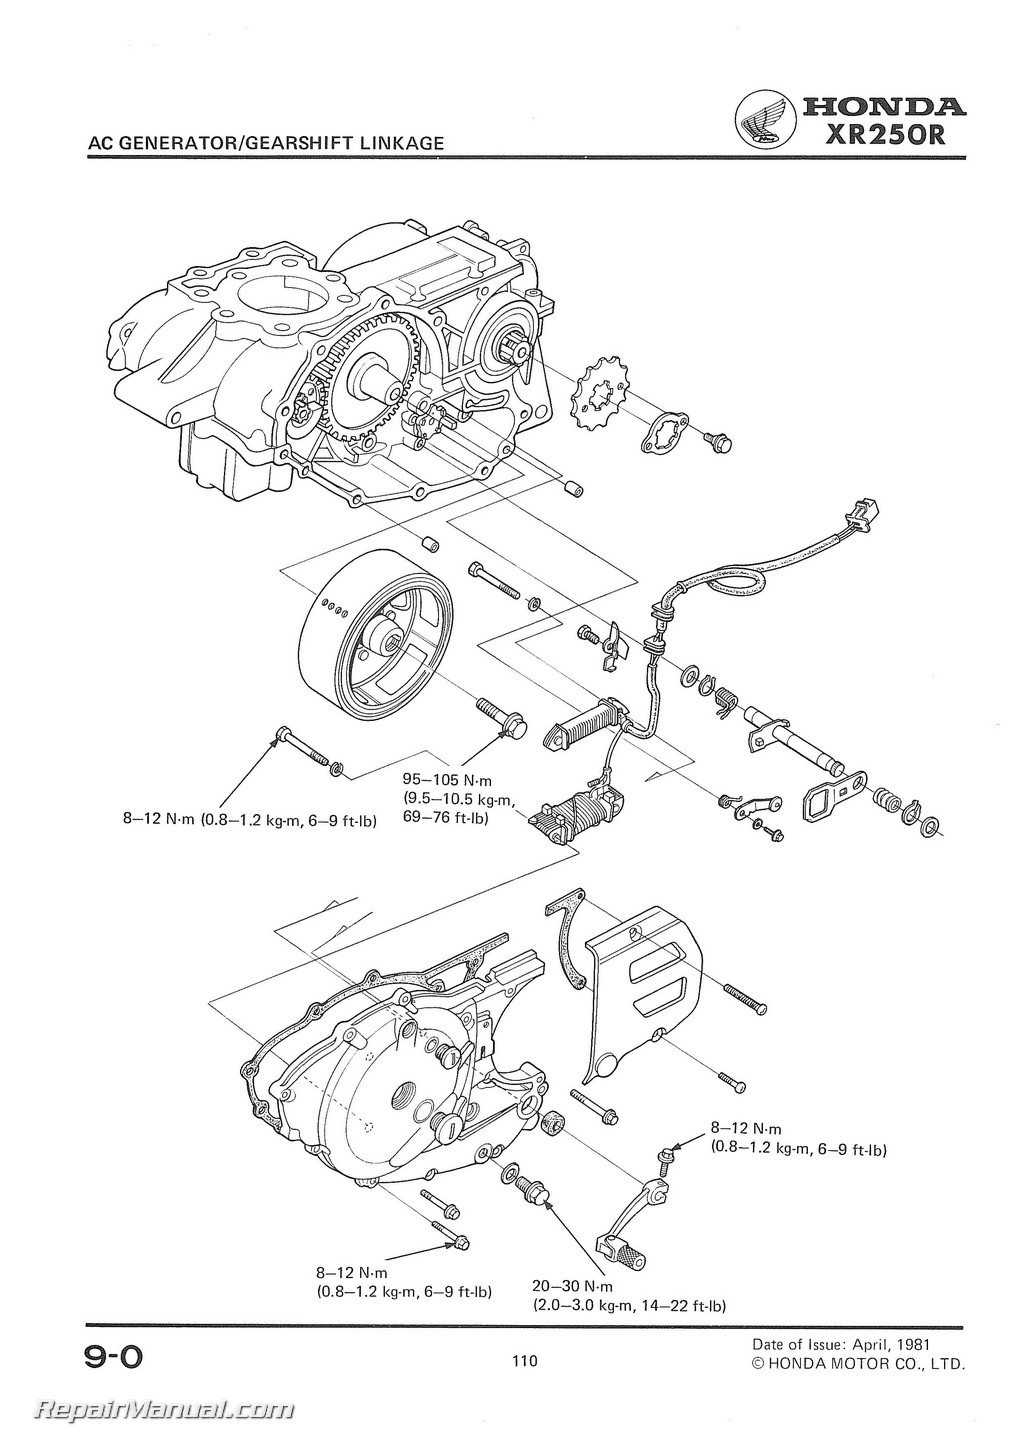 1981-1982 Honda XR250R Motorcycle Service Manual